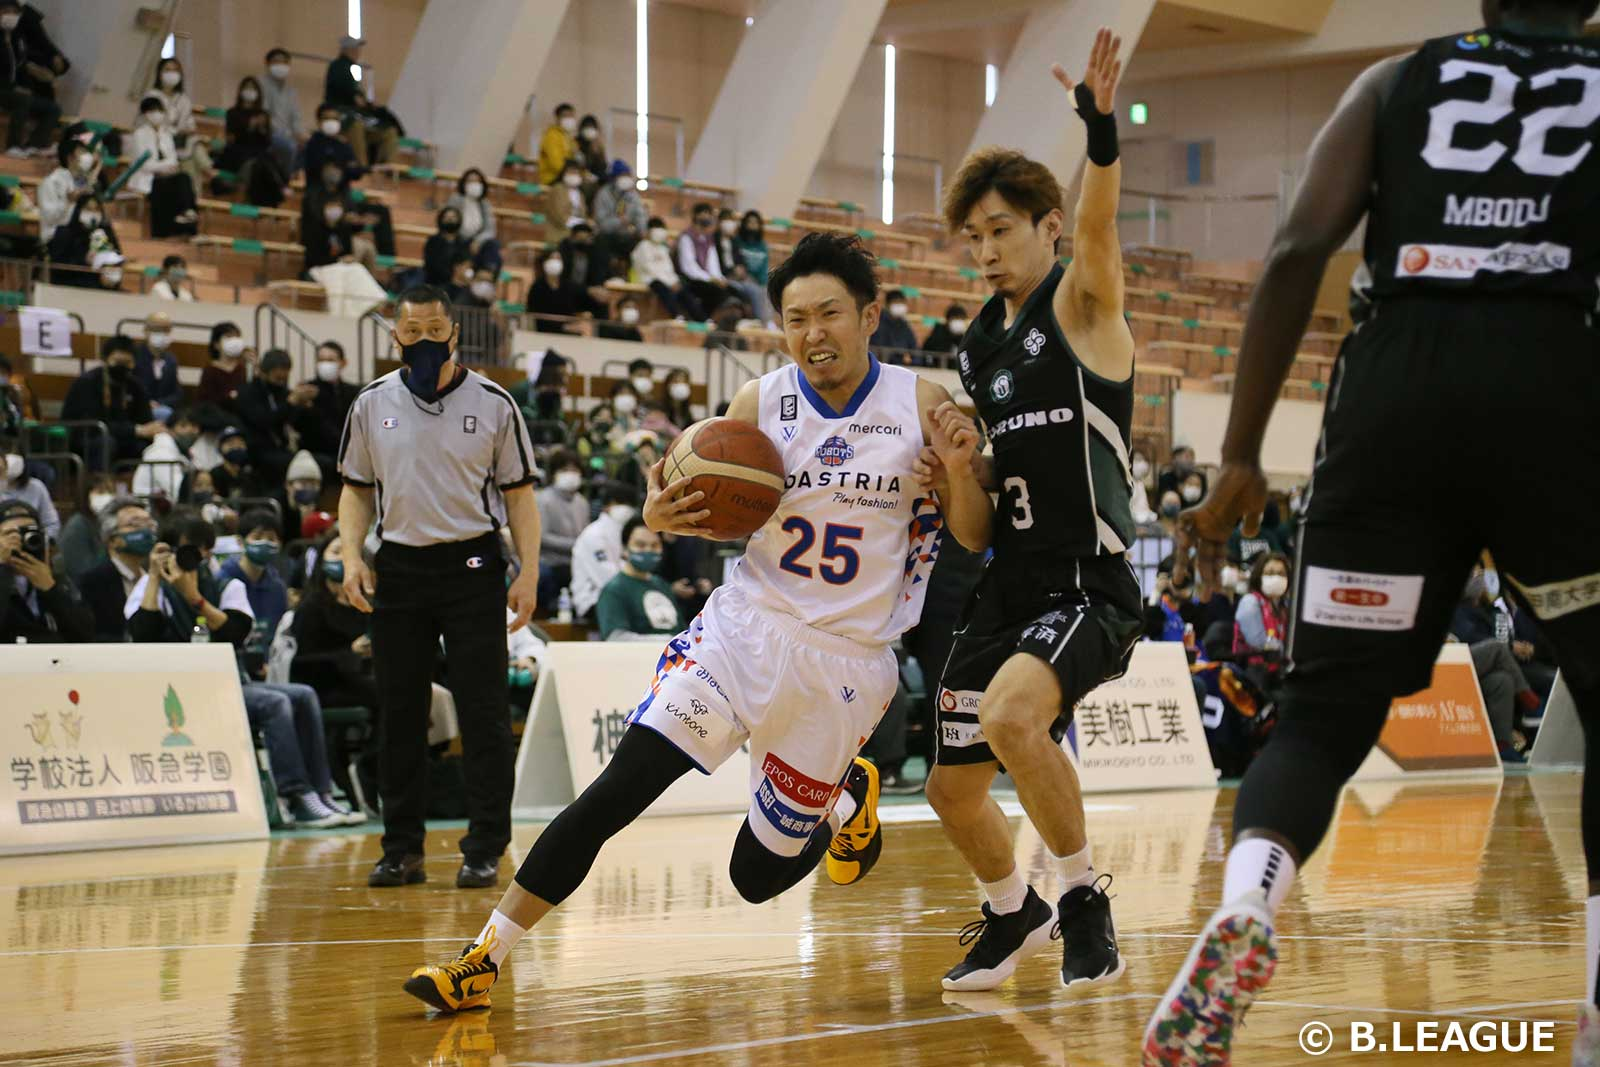 【AFTER GAME】 2020-21第24節 西宮戦(3/06~07)~連勝ストップも、連敗は許さず。強いチームへと駆け上がれ~